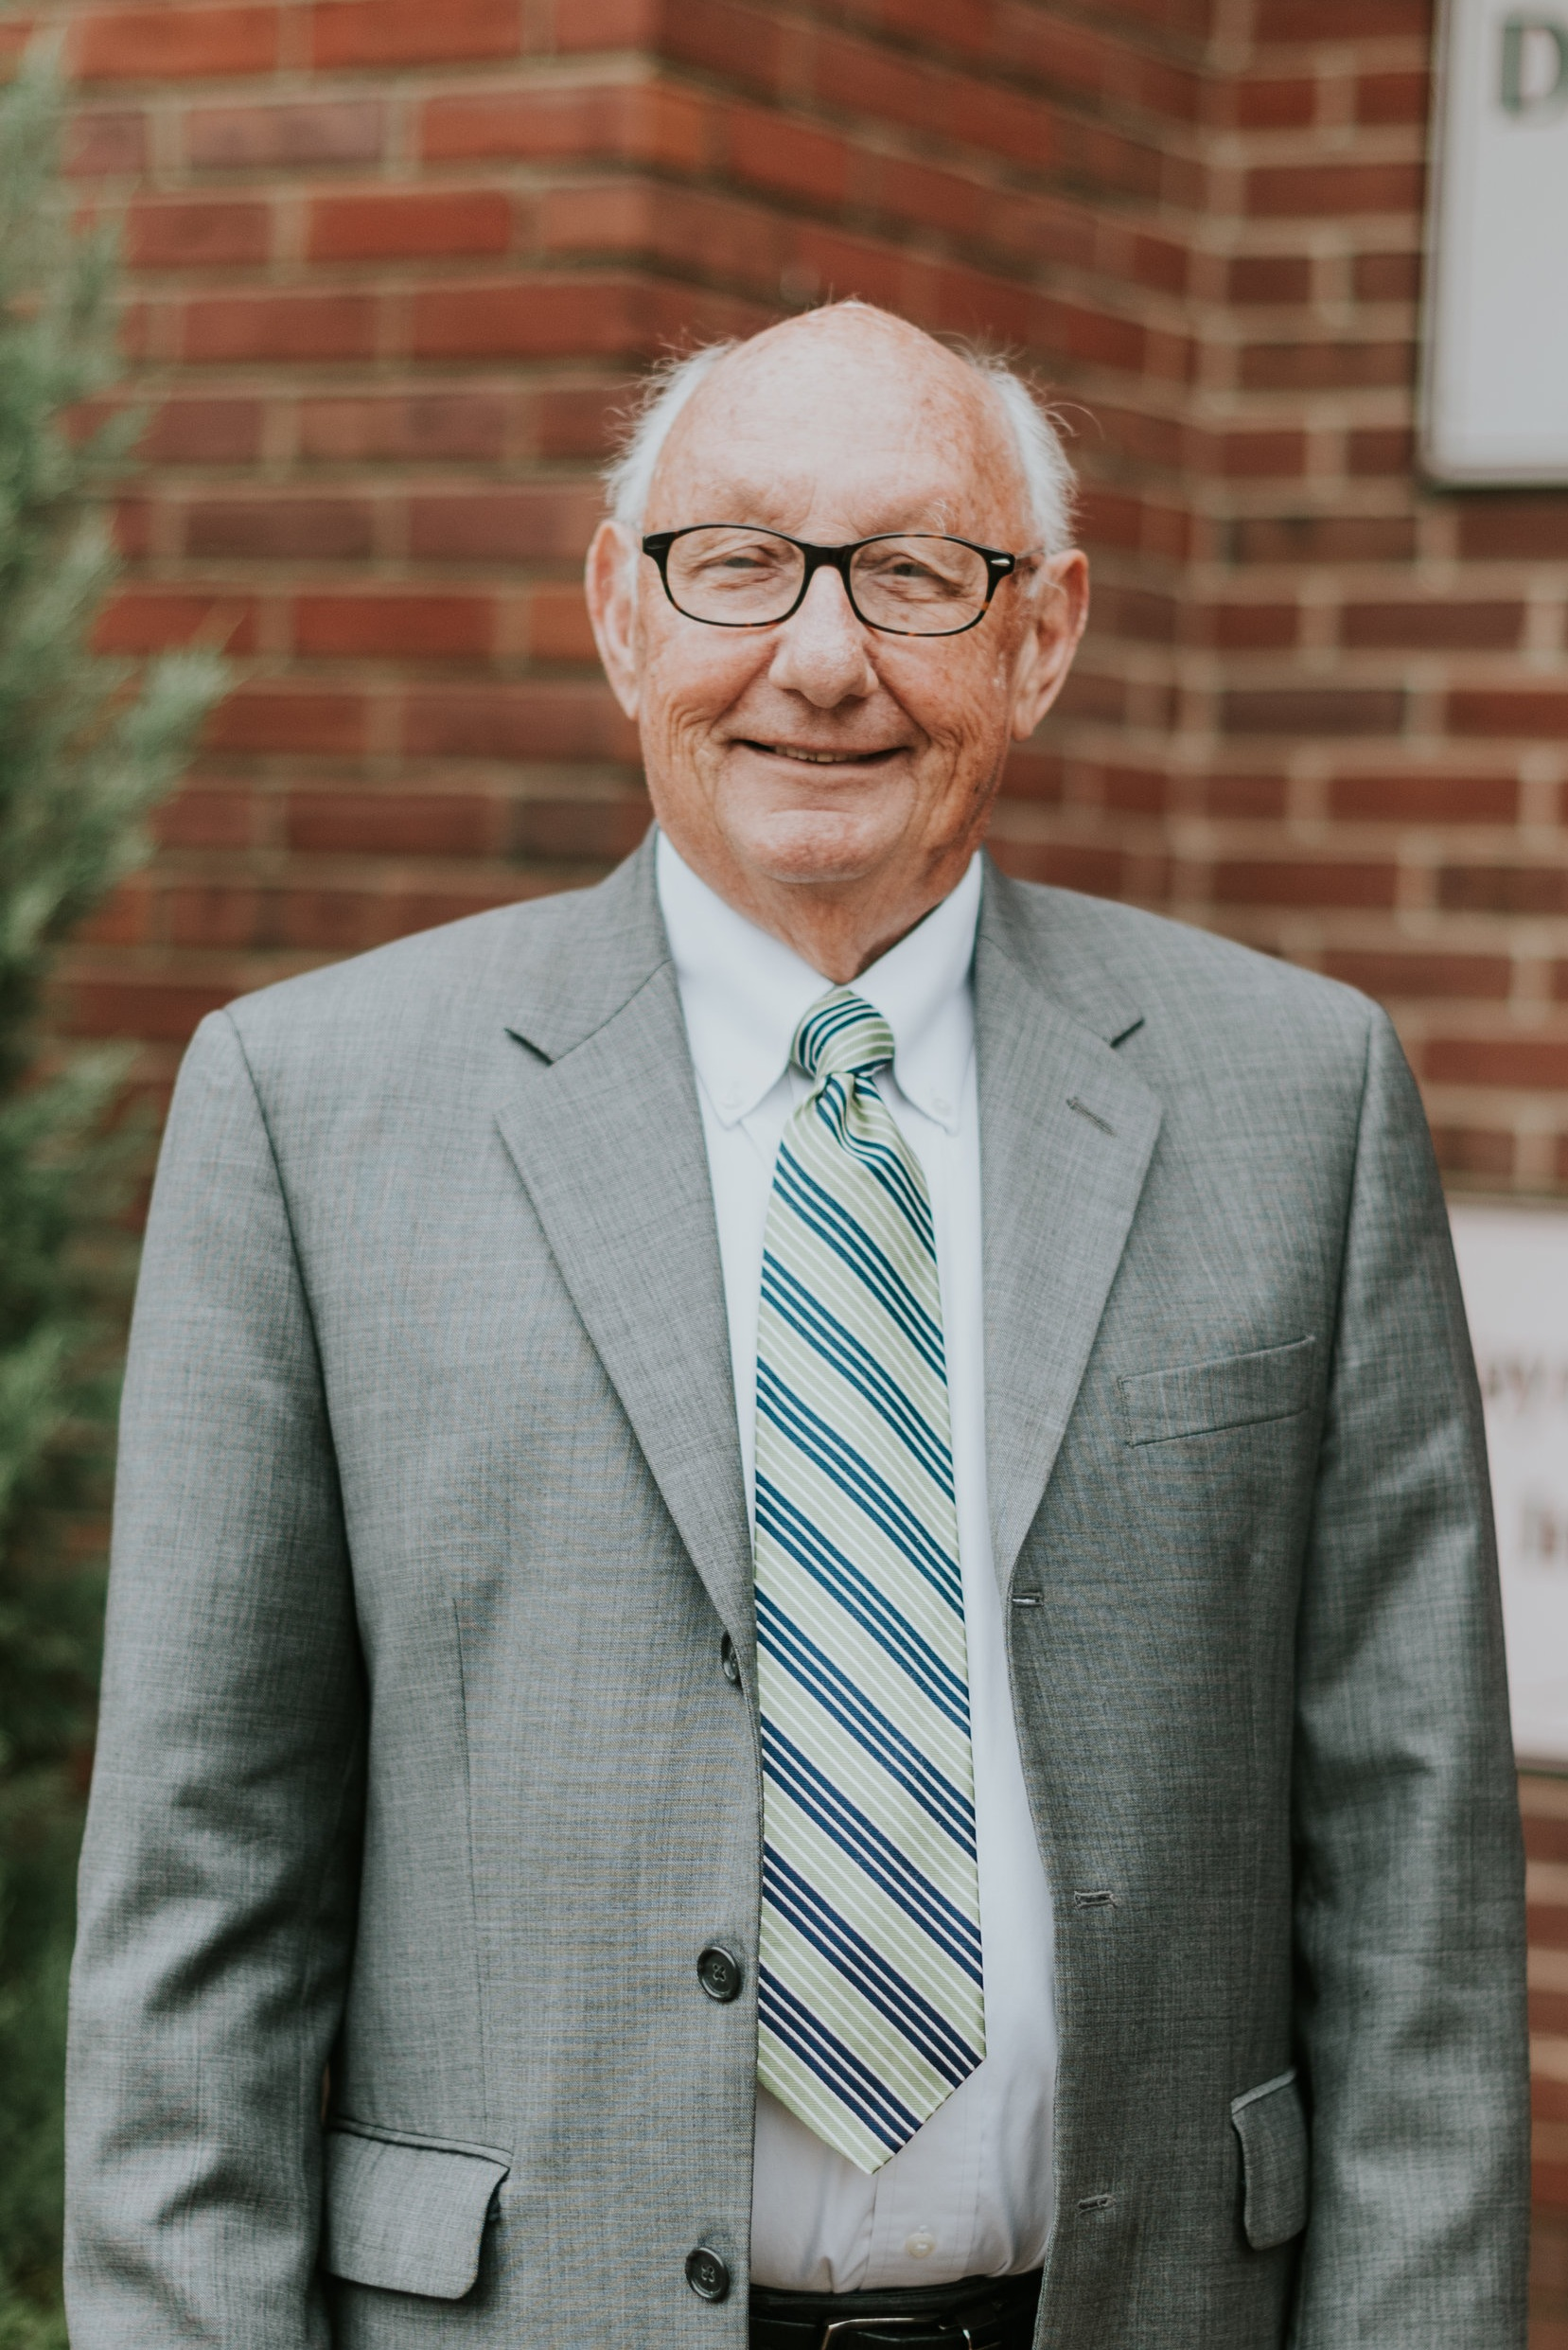 Dr. Albin C. Whitworth - Minister of Music and Worship/OrganistAlbin holds a B.A. and the Doctor of Church Music from Asbury University, M.Ed. and Ed.S. from University of Louisville. He joined the Deer Park staff in 2013.